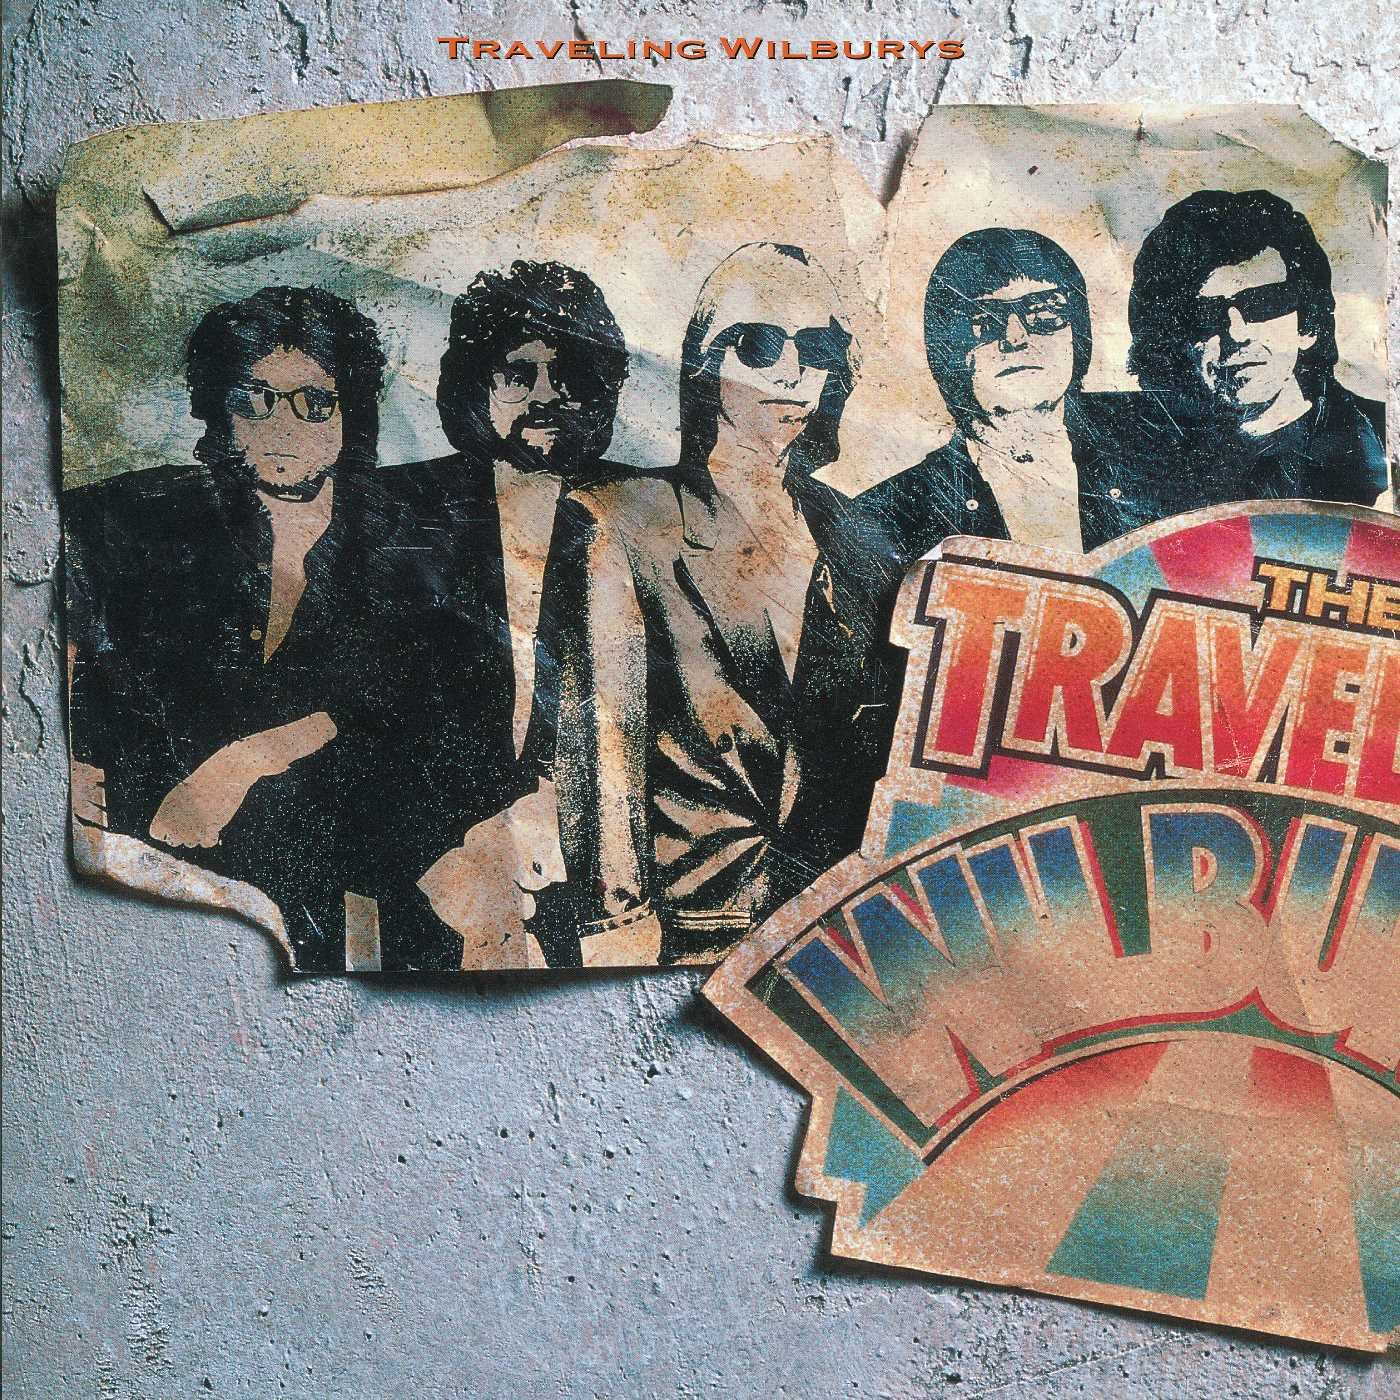 The Traveling Wilburys - Volume 1: The Traveling Wilburys, The Traveling Wilburys: Amazon.es: Música